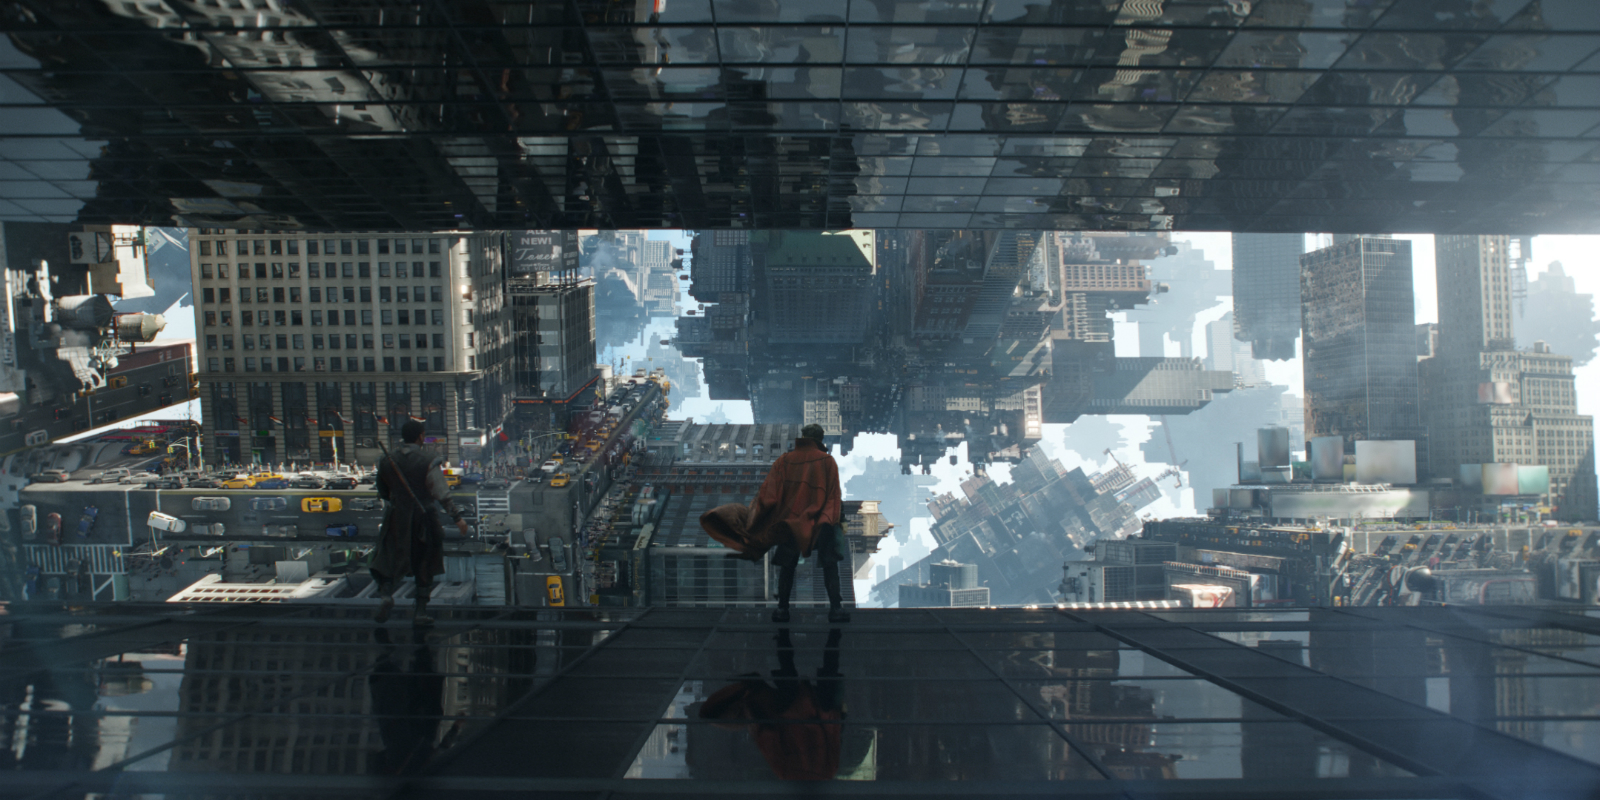 doctor-strange-movie-image-gallery